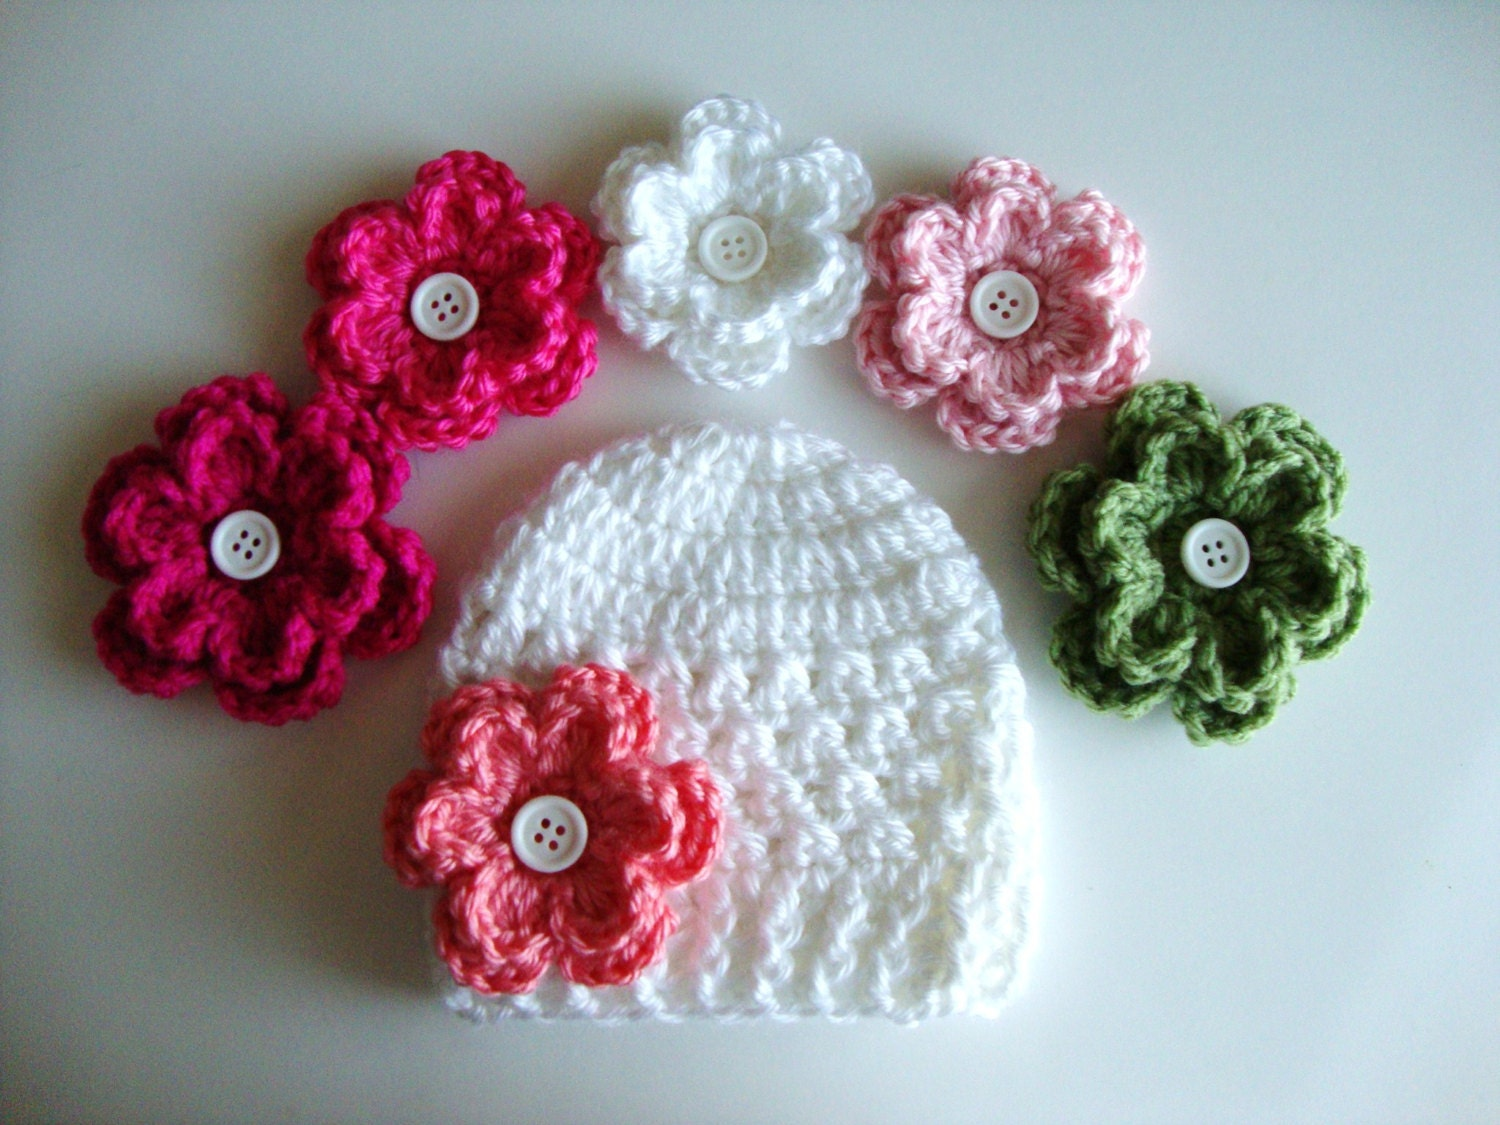 Crochet Flower For Hat : Baby Girl Crochet Flower Hat Pattern Preemie up to 12 months